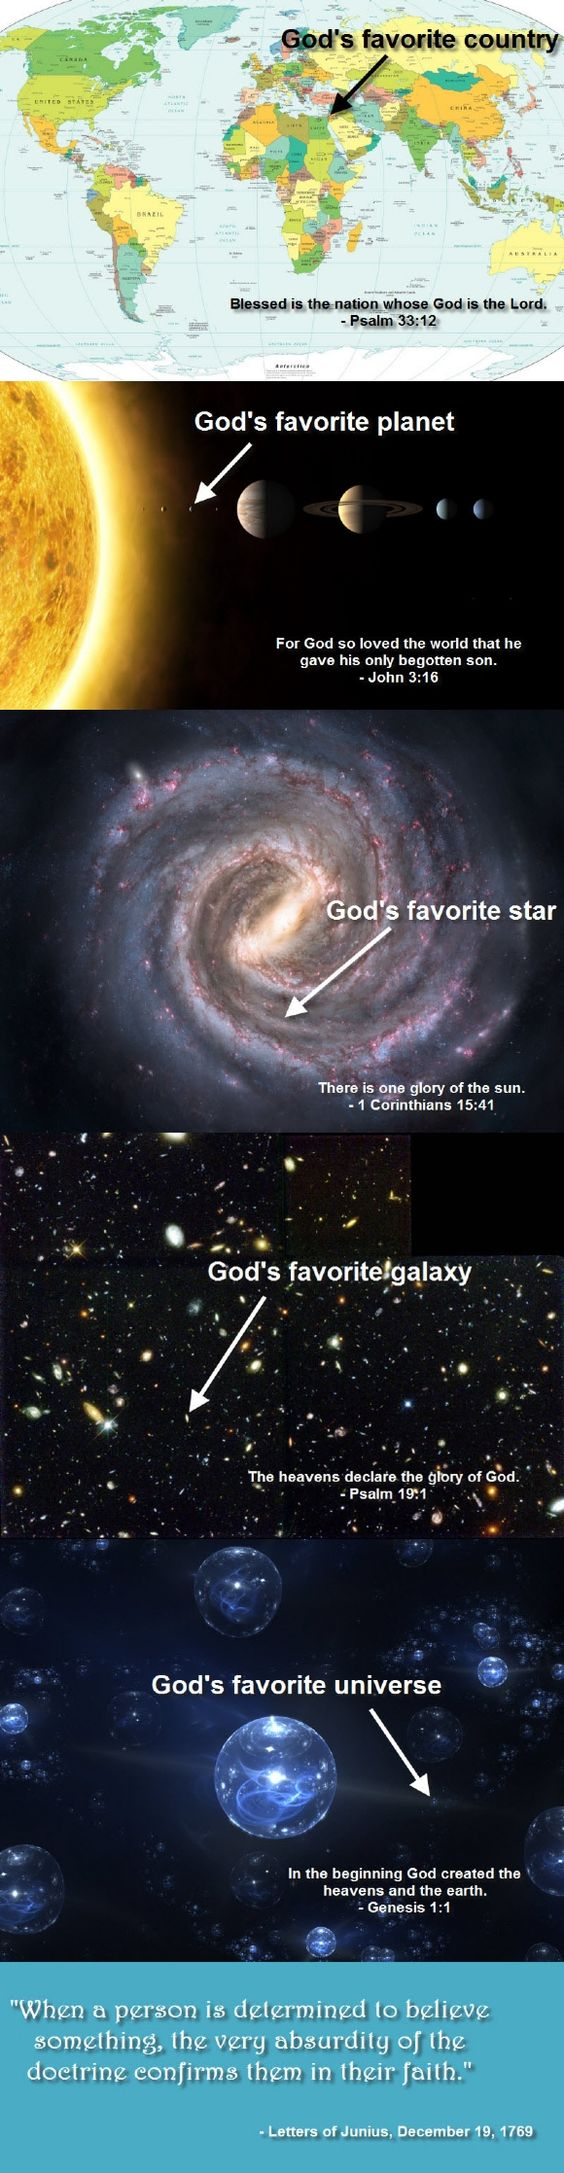 God's favorite. ~ Yes, this puts it all in perspective and illustrates so clearly how ridiculous a belief in a god really is.: